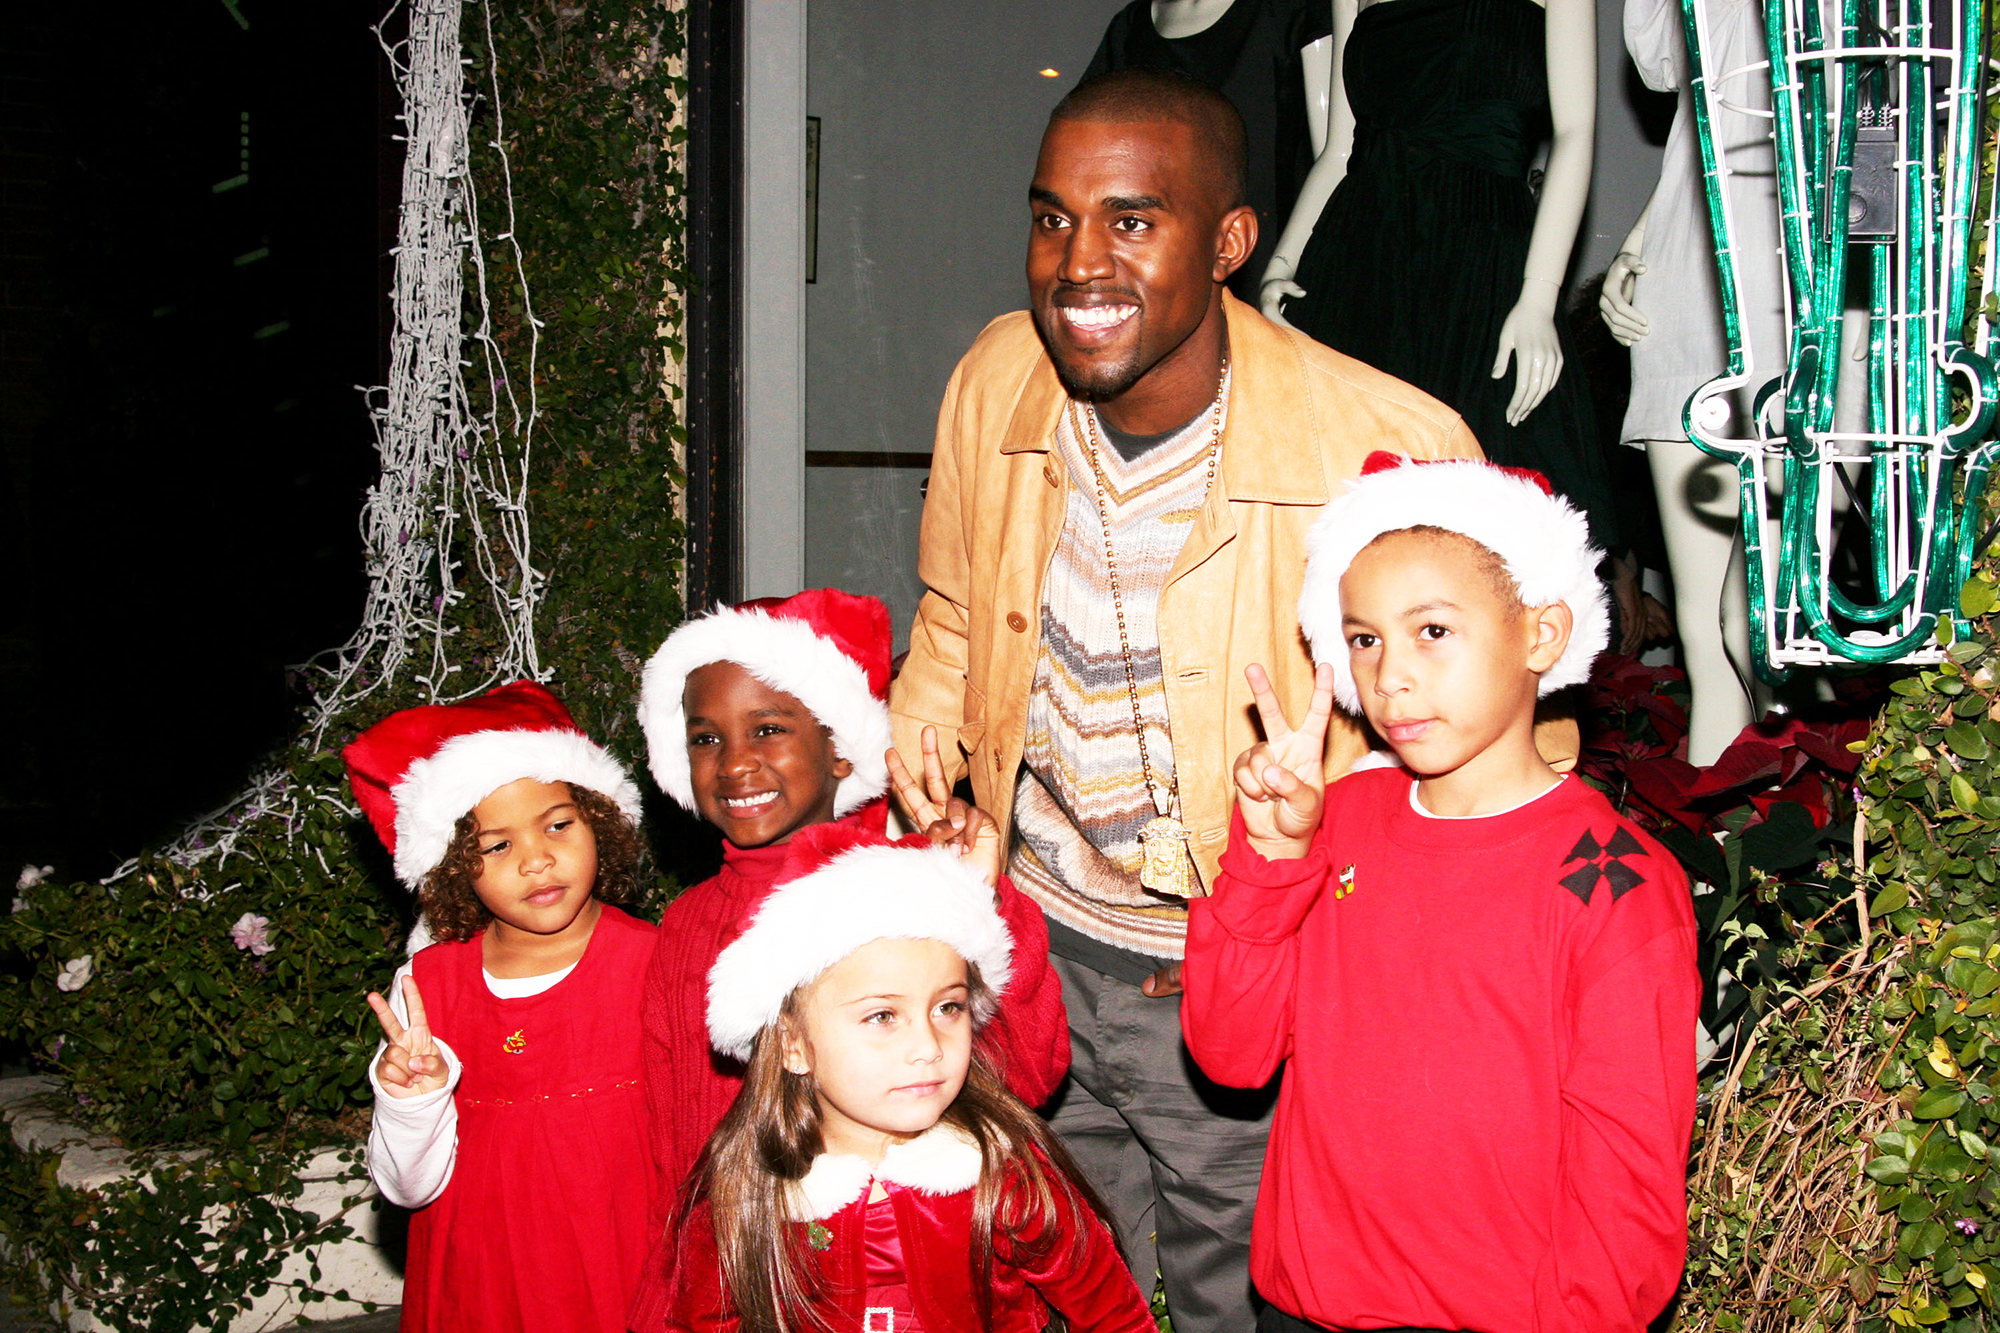 Kanye West poses with children prior to Christmas in Los Angeles, on Dec. 5, 2006.